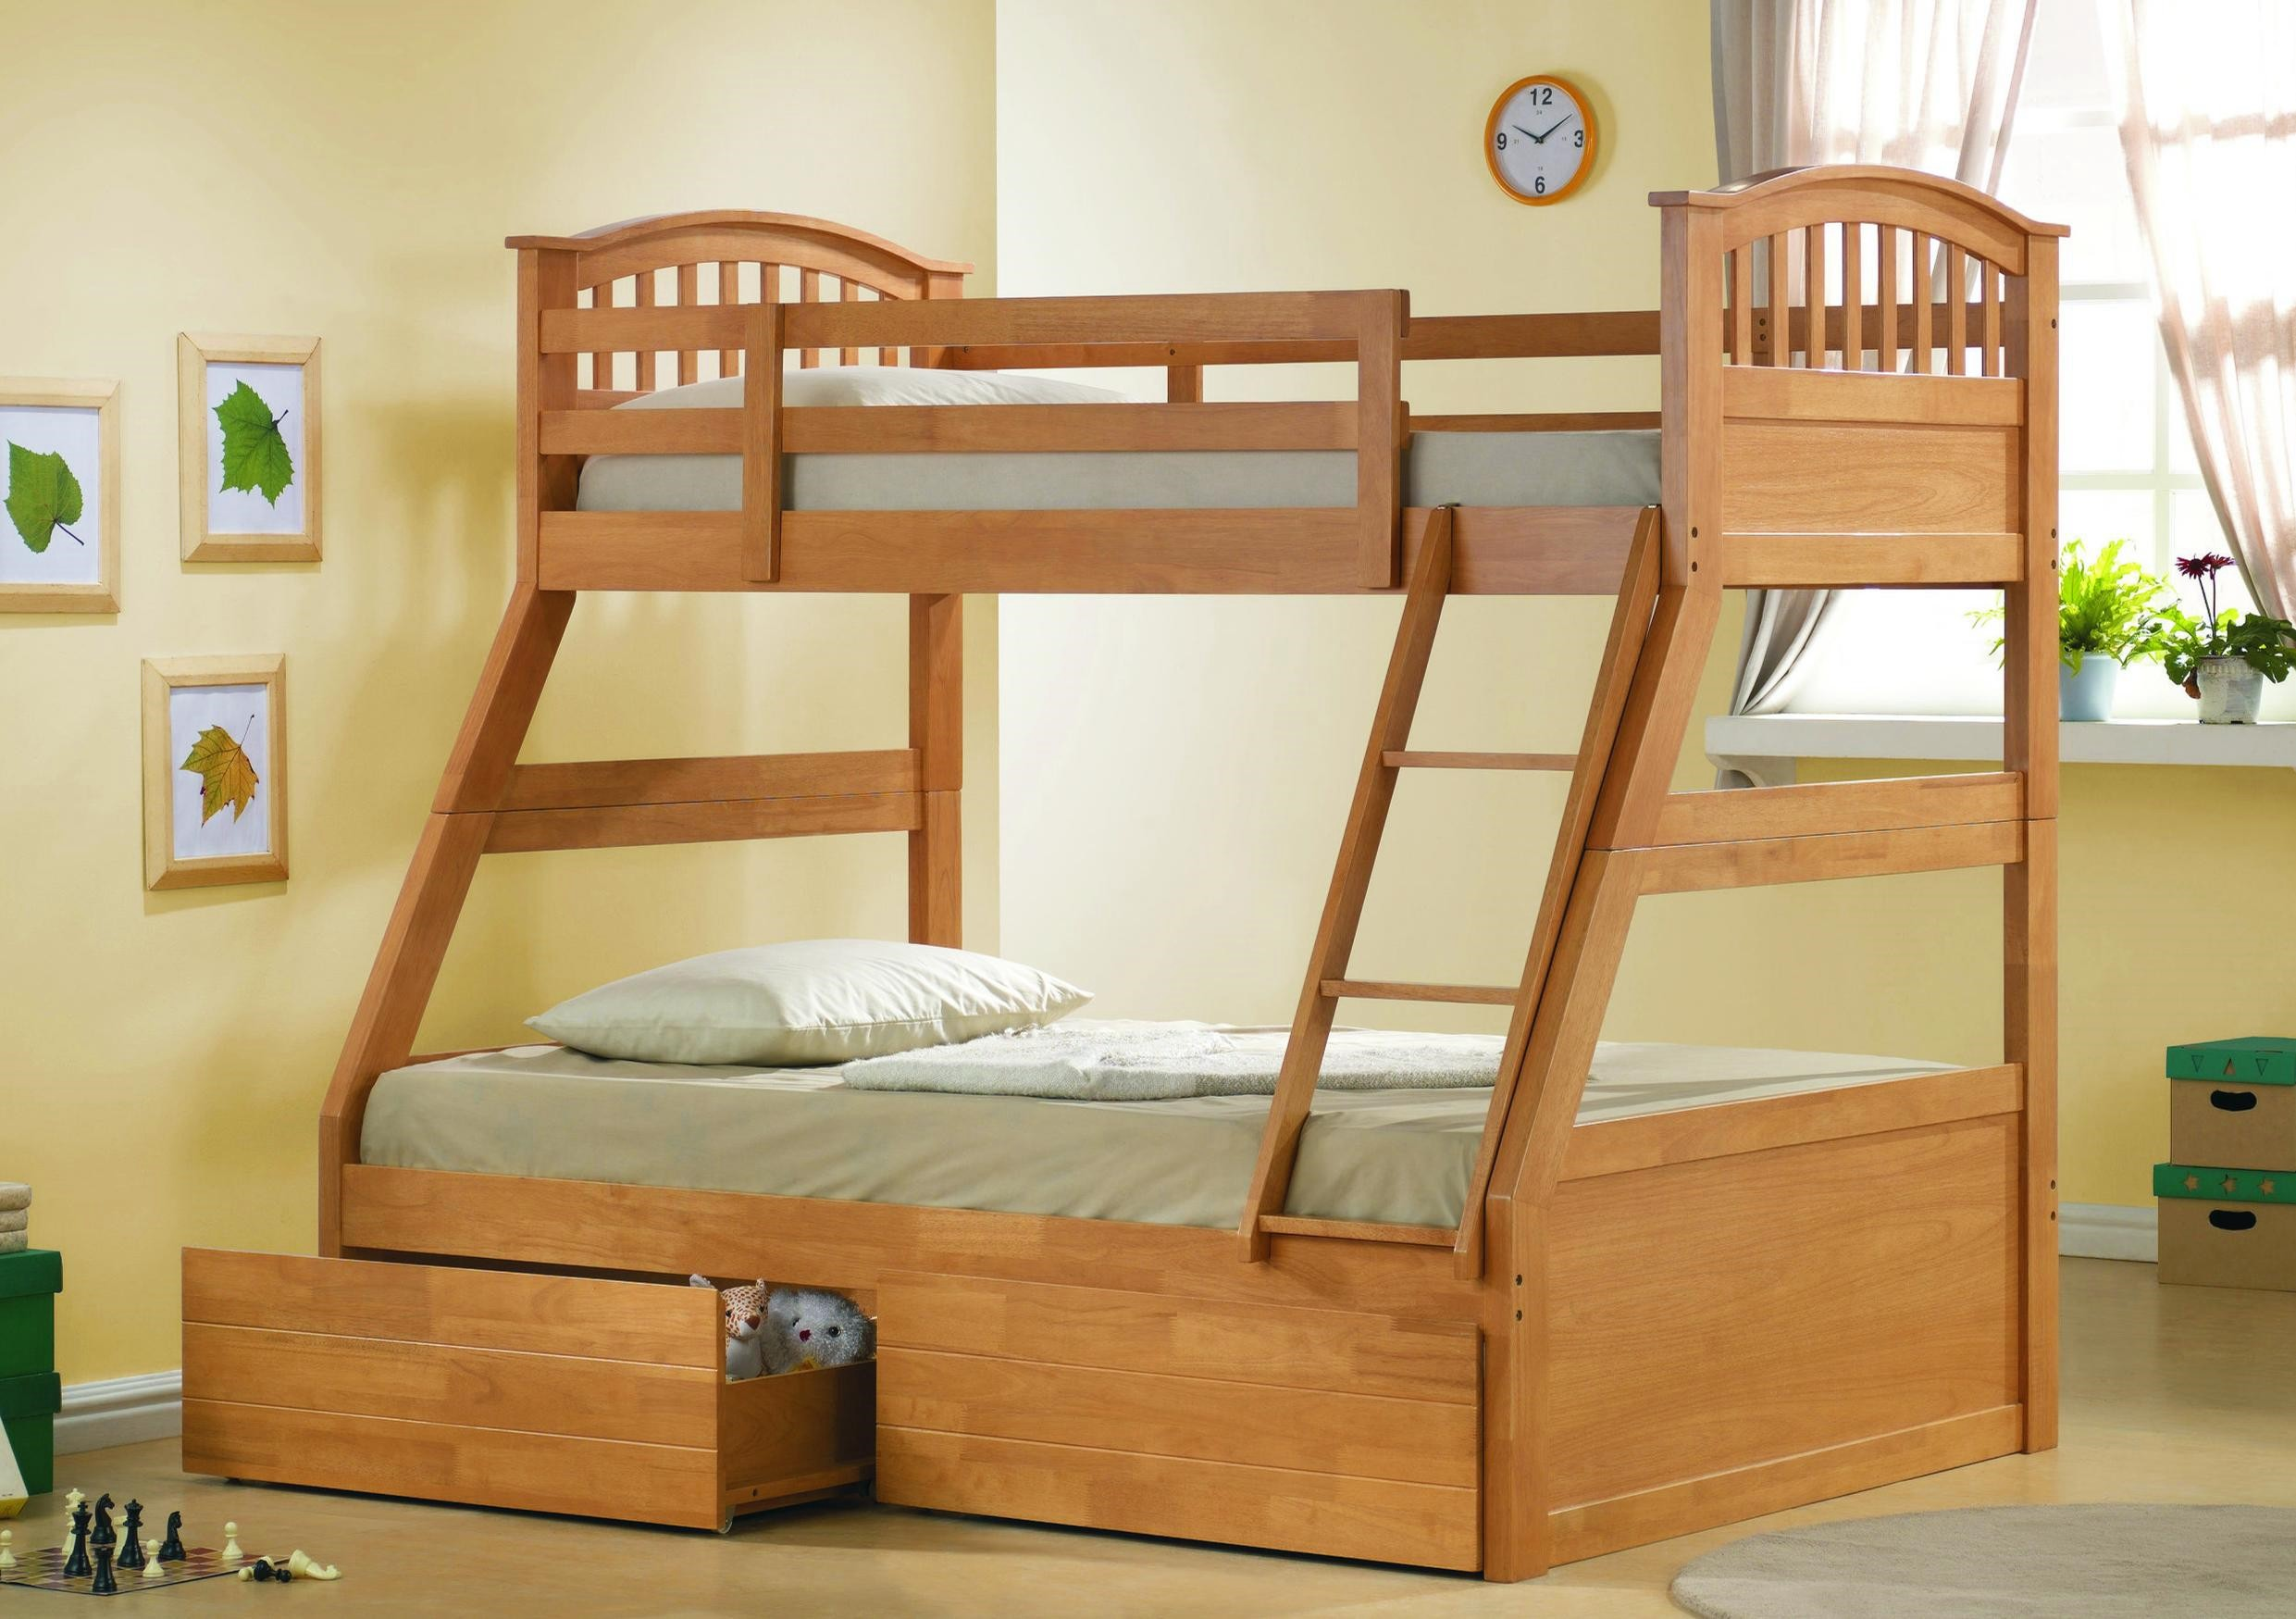 Features of Cool Beds For Kids Cool Beds